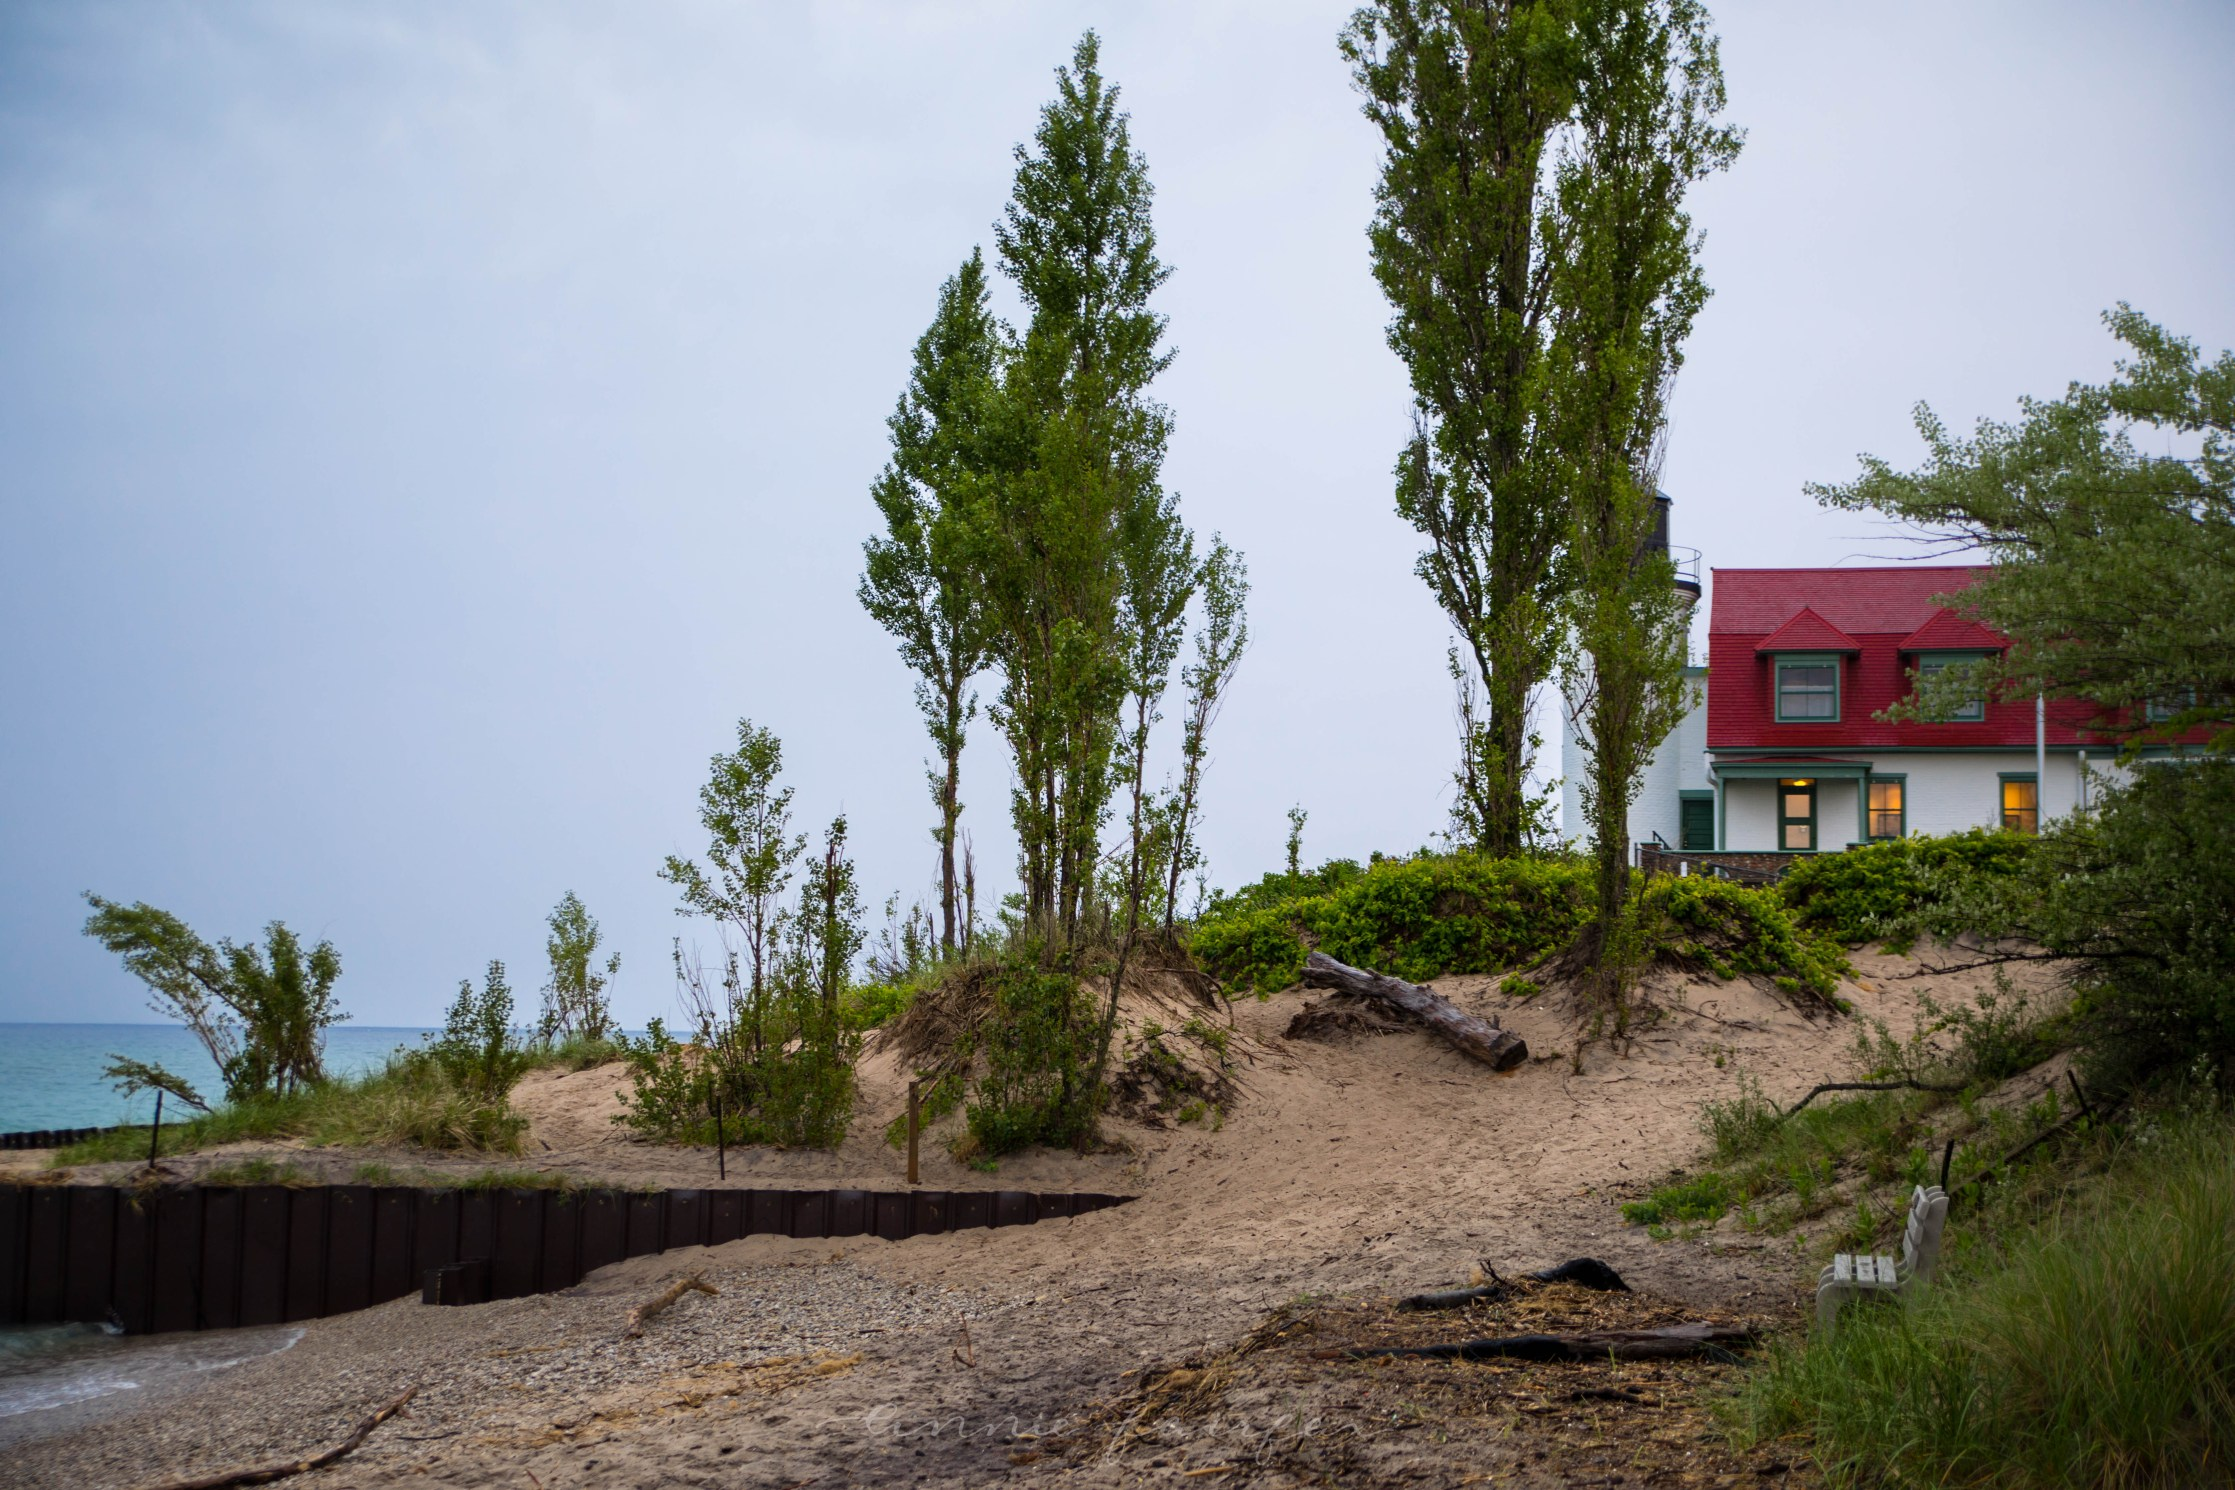 Pointe Betsy Lighthouse Where to Stay near Traverse City, Michigan The Complete Traveler's Guide to Traverse City, MI